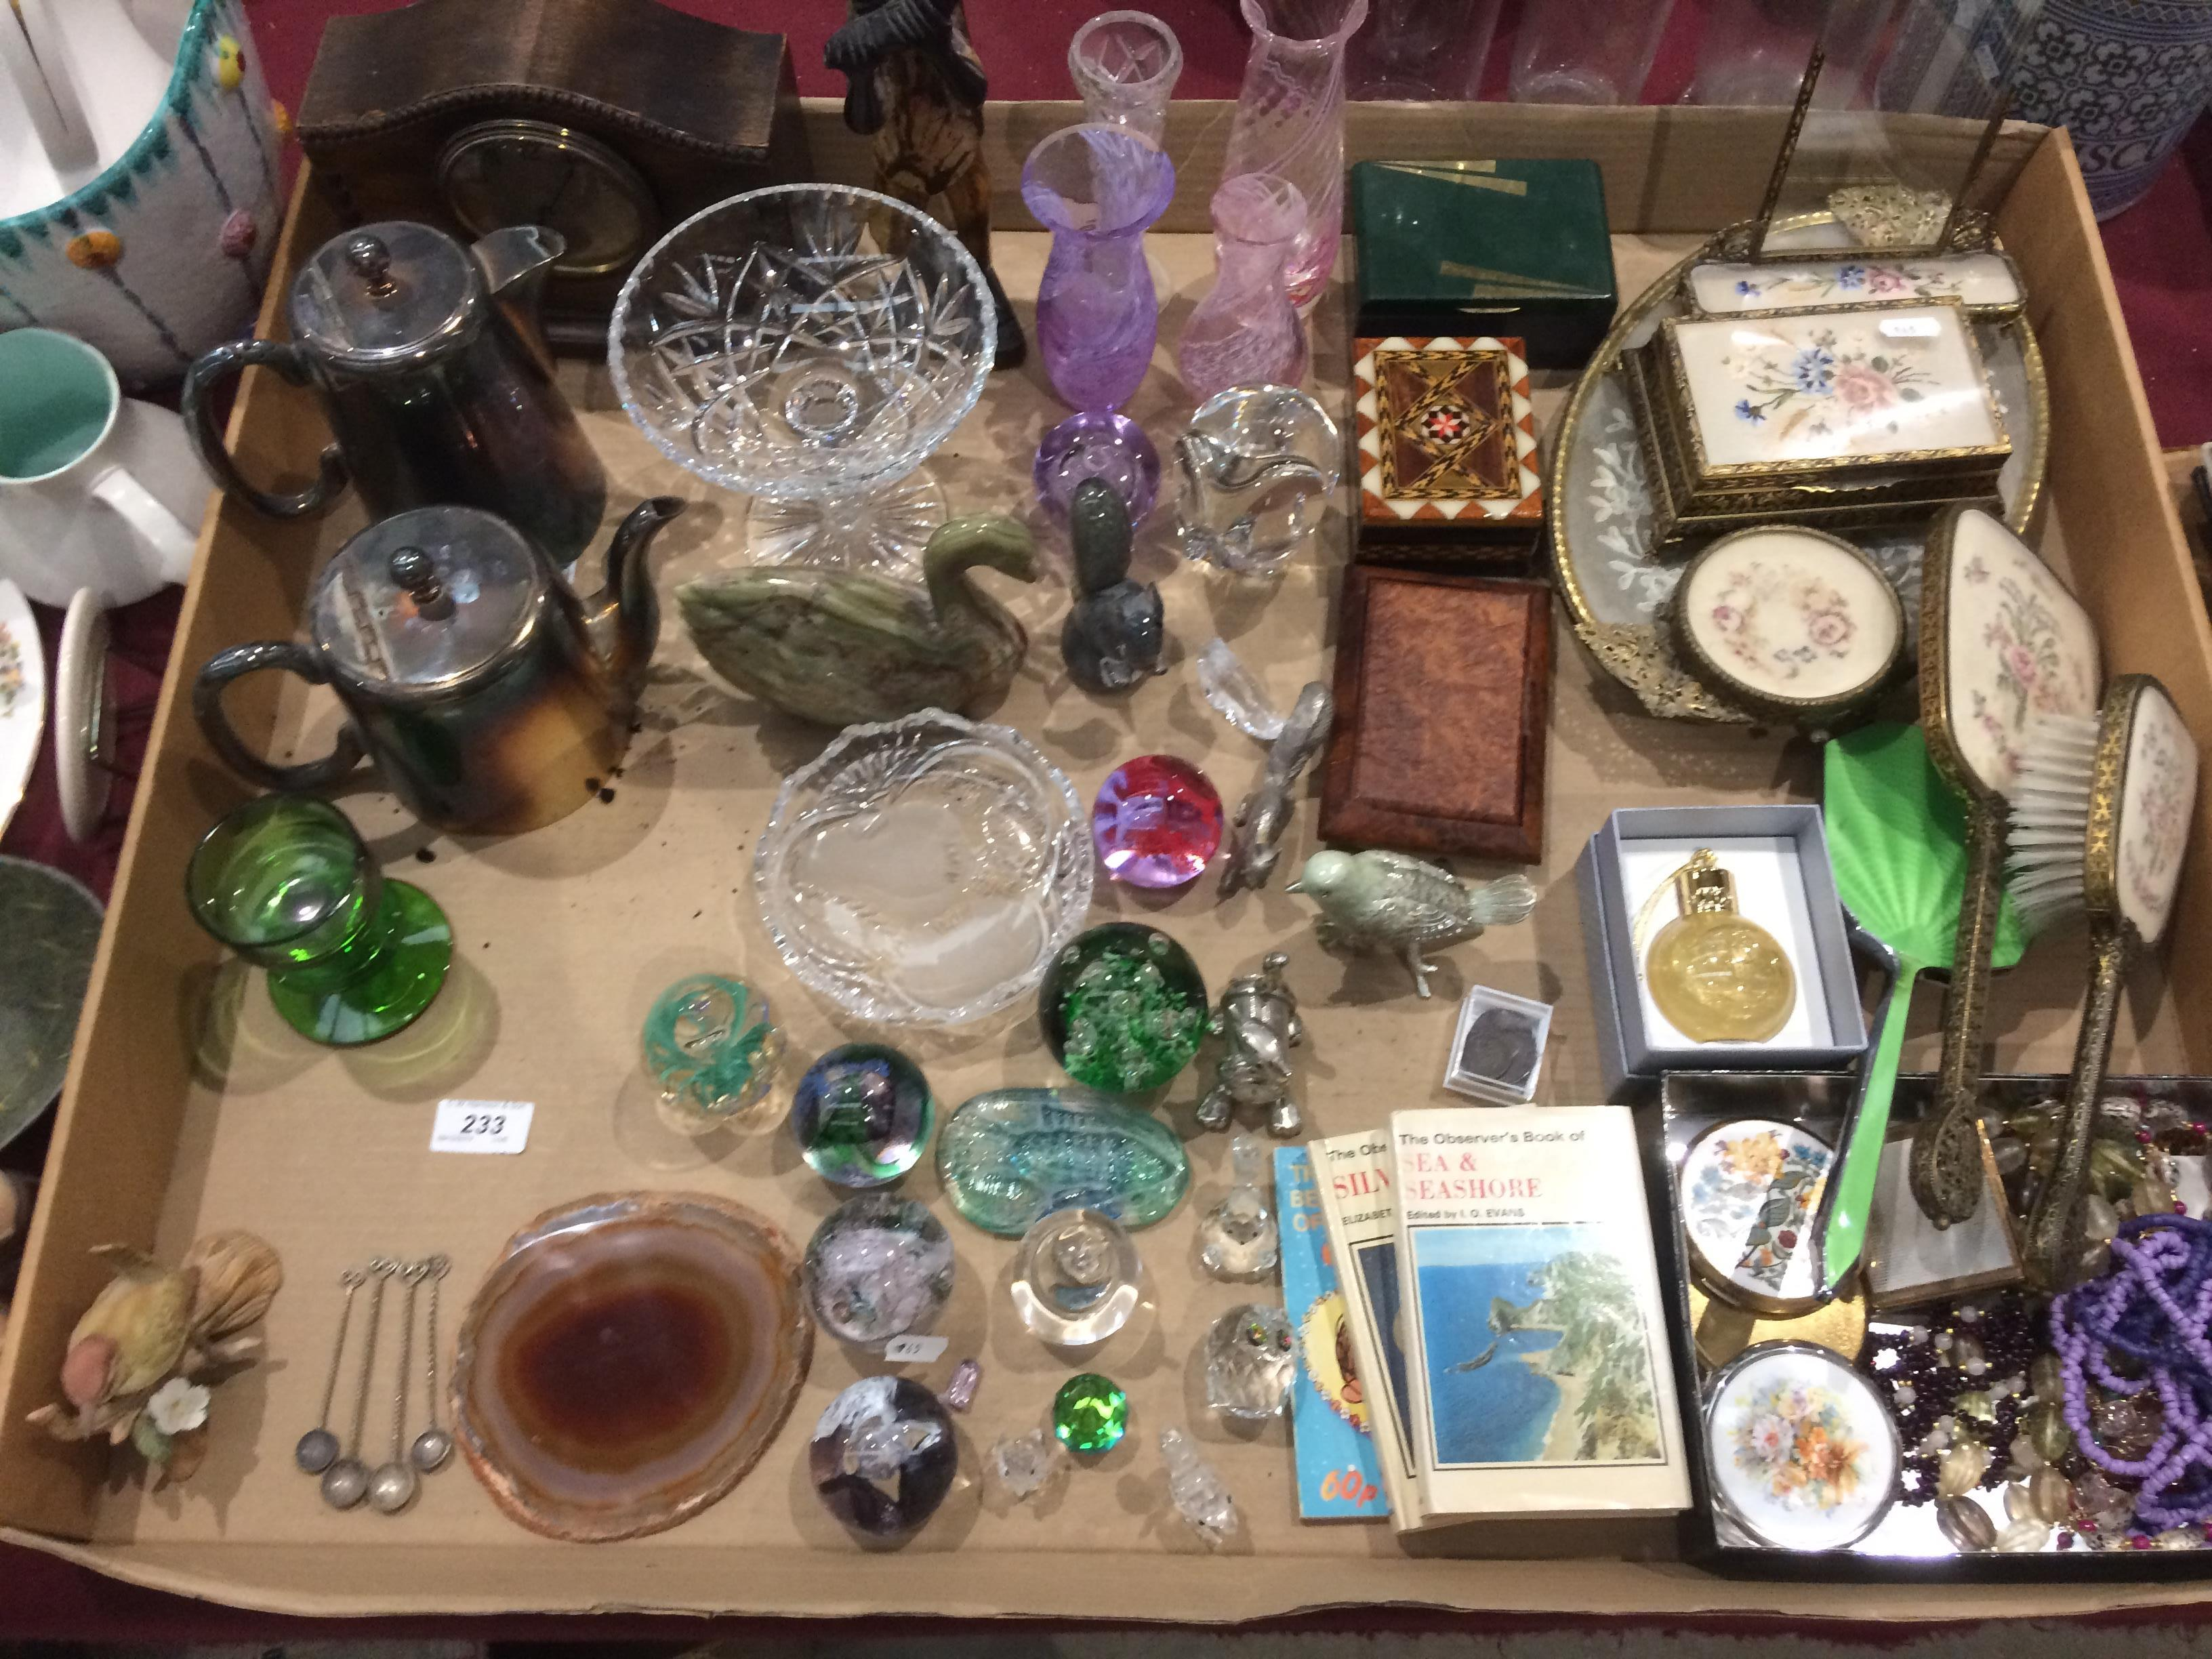 Lot 233 - Contents to tray - glass paperweights, dressing table set, Observer books,